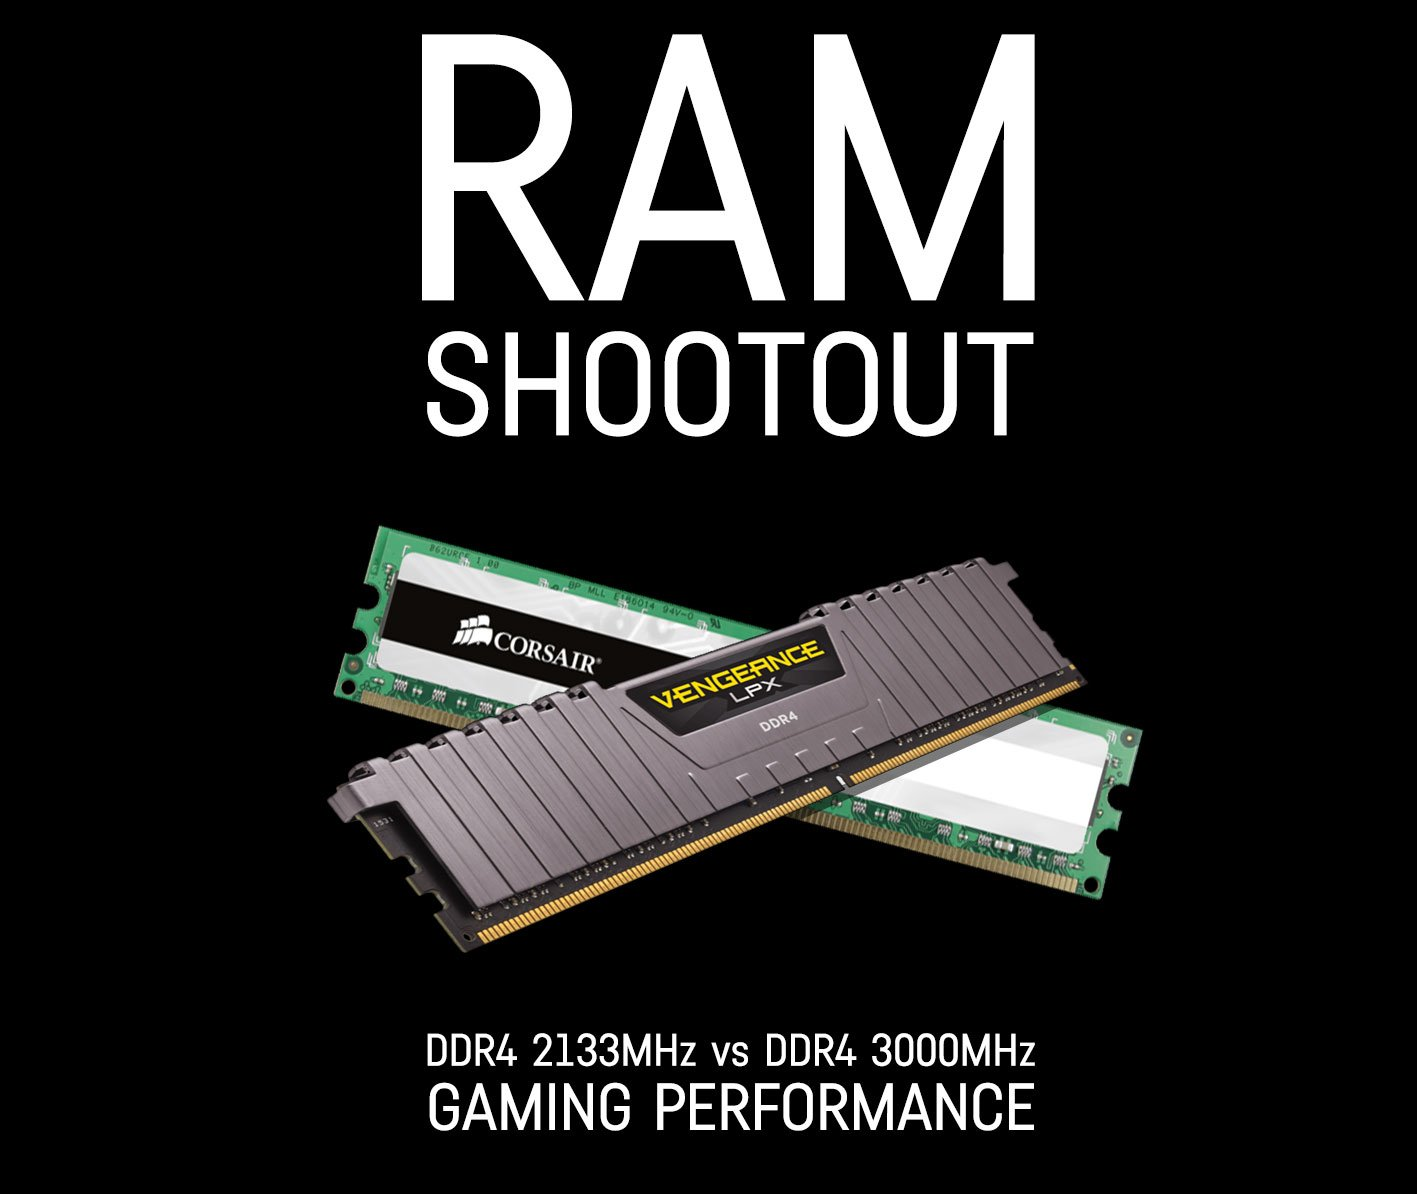 Does high speed DDR4 make any difference?